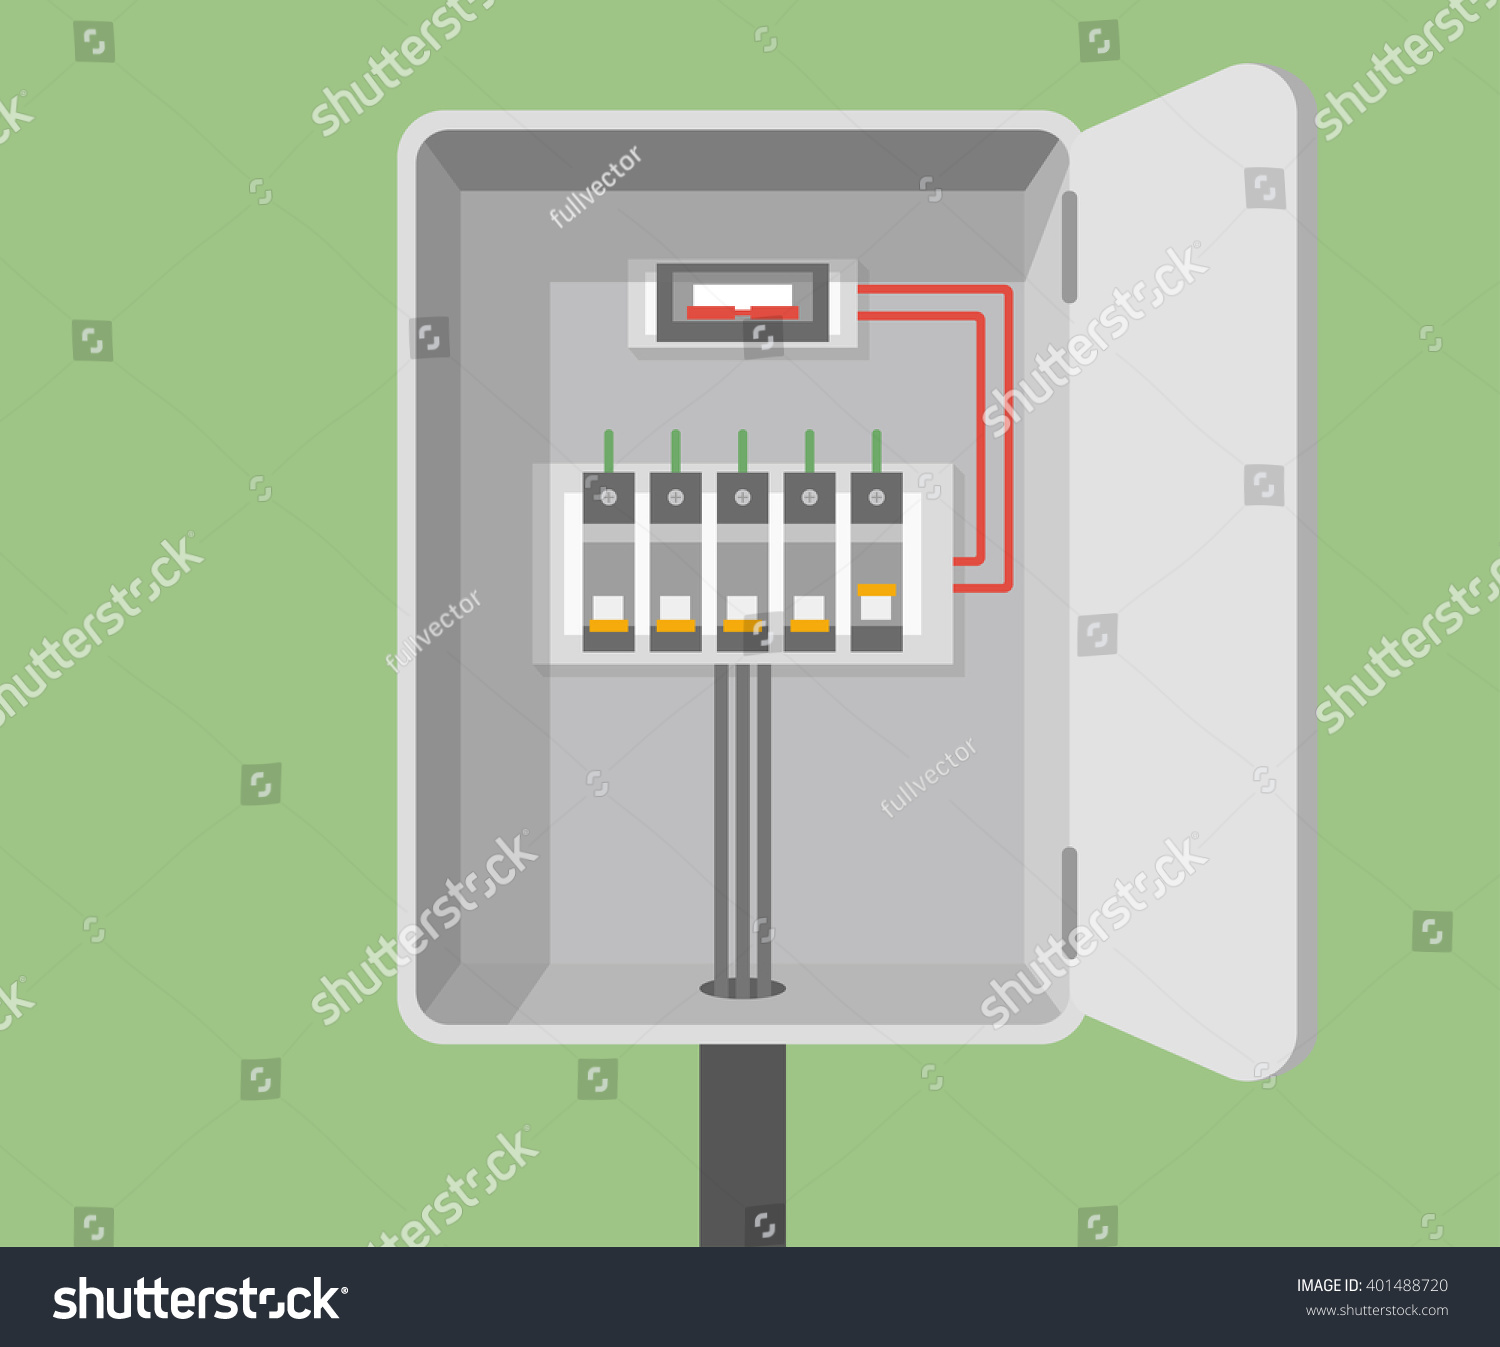 Circuit Breaker Cabinet Breakers Vector Flat Circuit Breakers Electrical Stock Vector